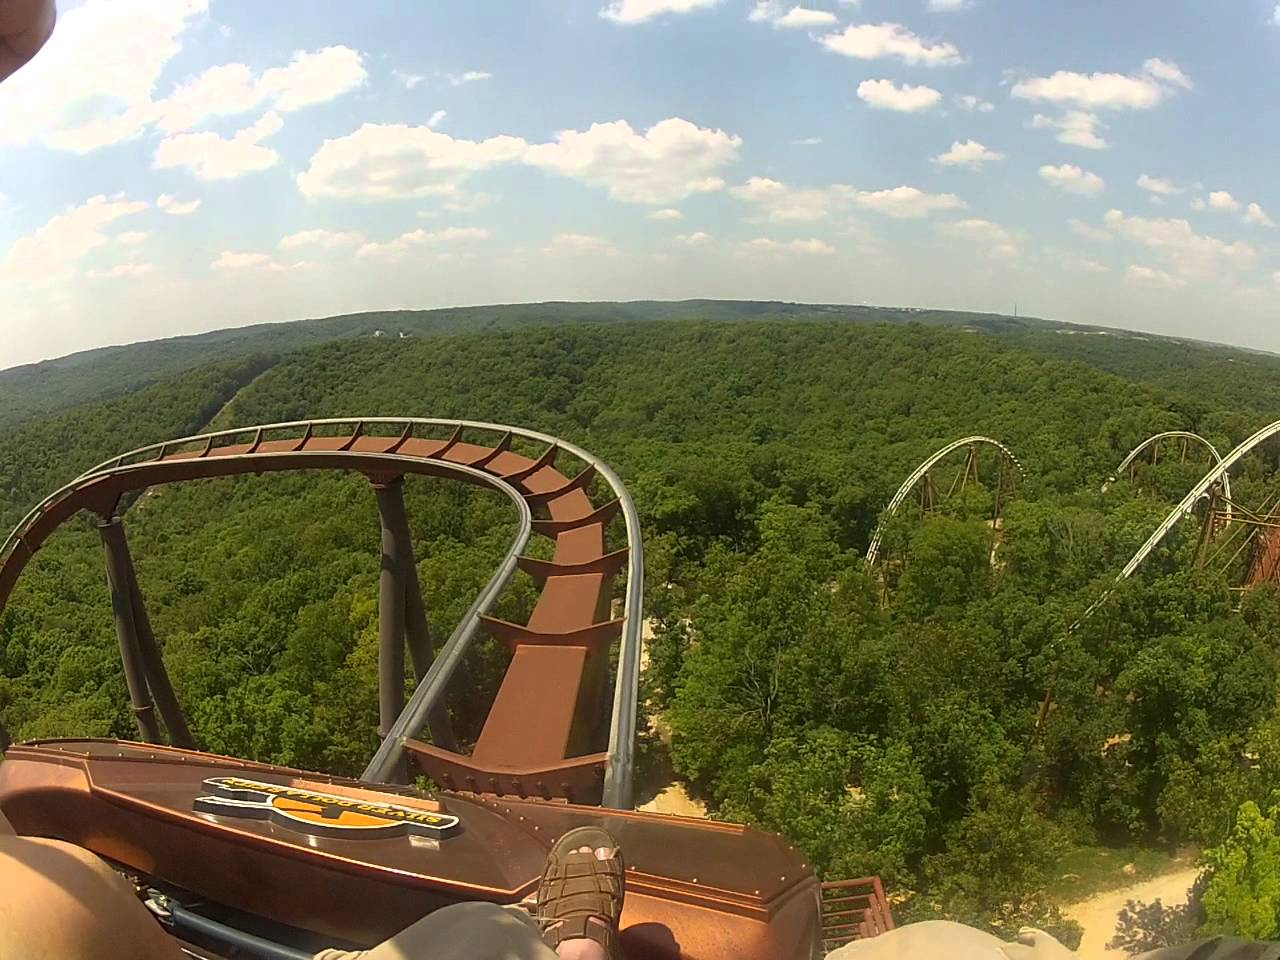 Wildfire Rollercoaster at Silver Dollar City (Branson MO) Front Seat POV